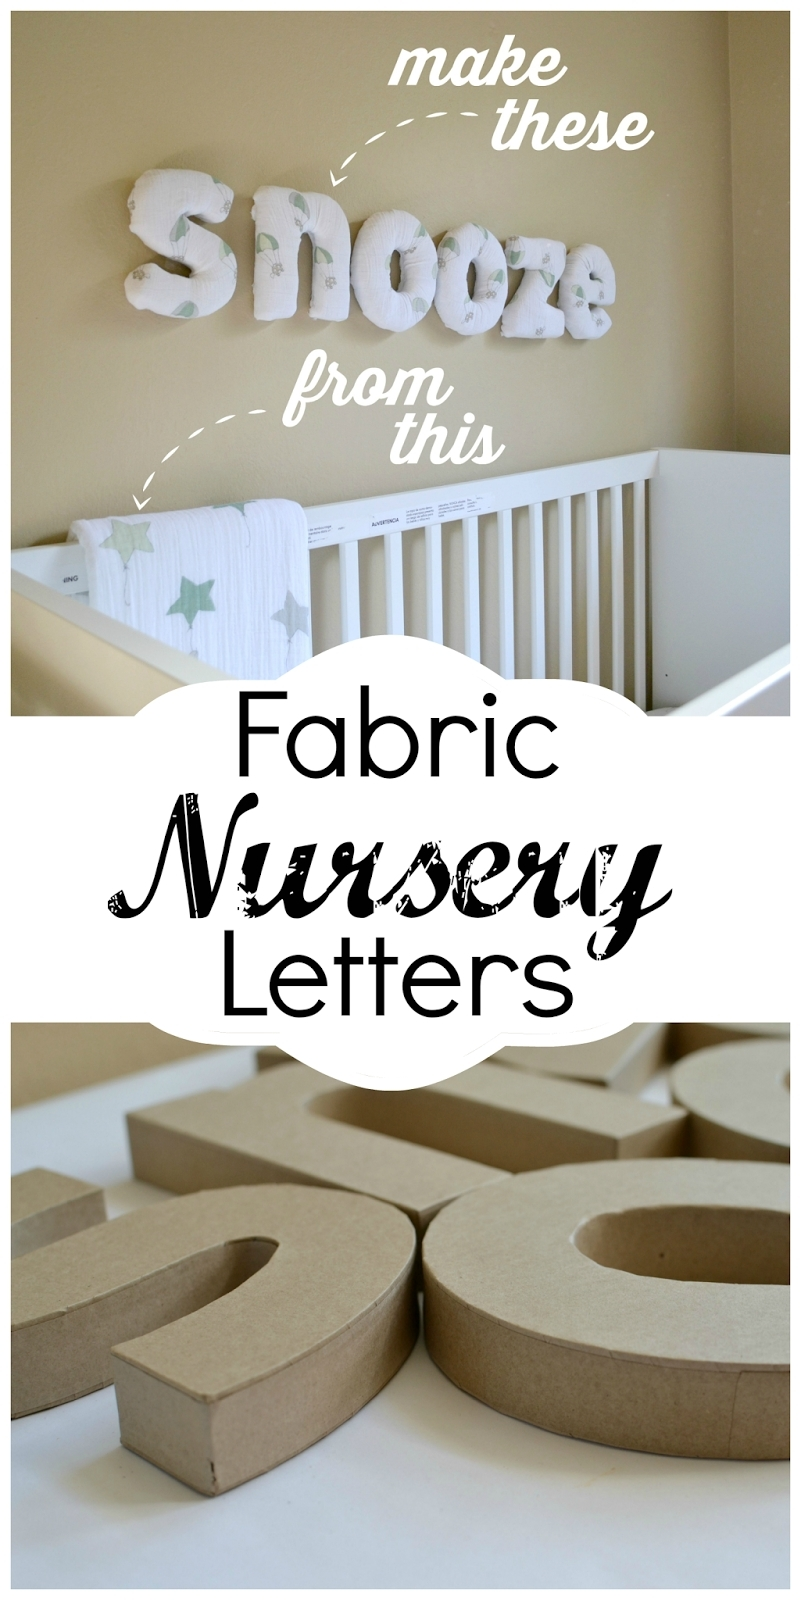 How To Make Easy Diy Fabric Letters For Your Nursery | Fabric Throughout Current Fabric Name Wall Art (View 6 of 15)